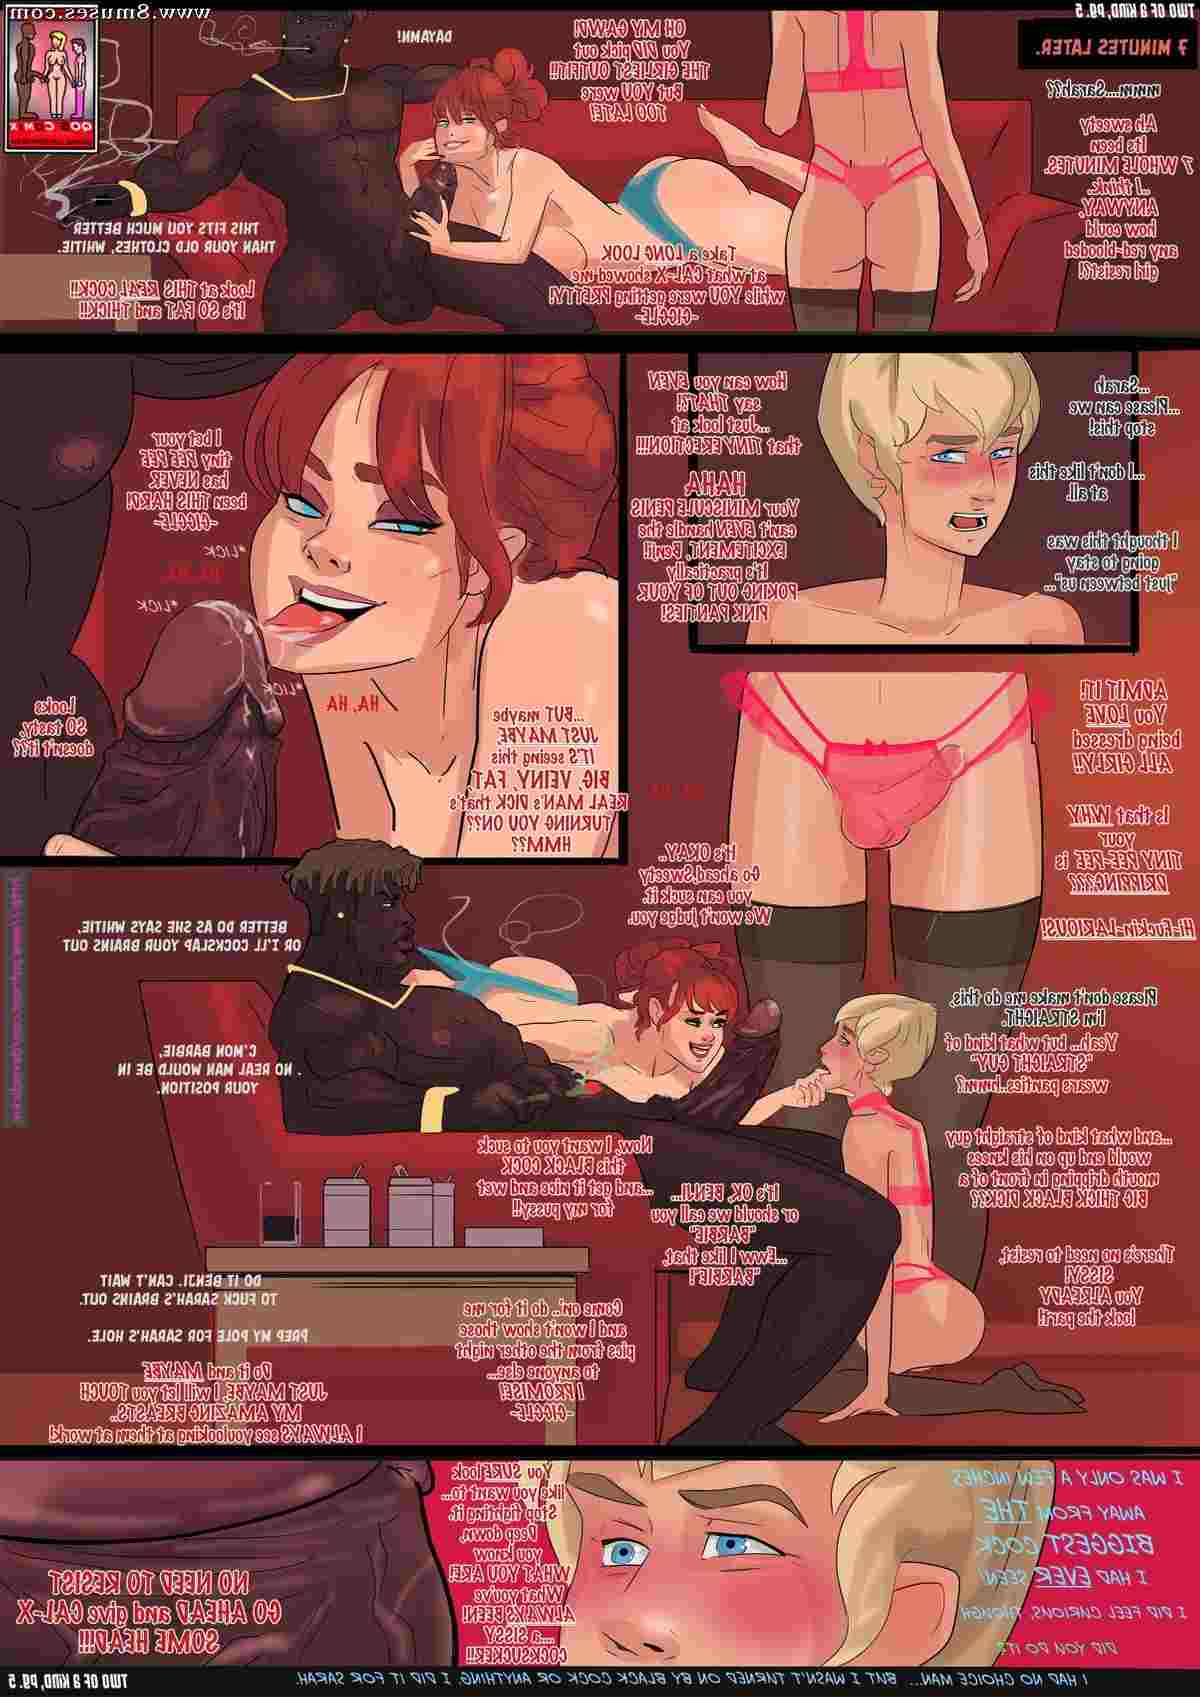 Devin-Dickie-Comics/Two-of-a-Kind Two_of_a_Kind__8muses_-_Sex_and_Porn_Comics_6.jpg